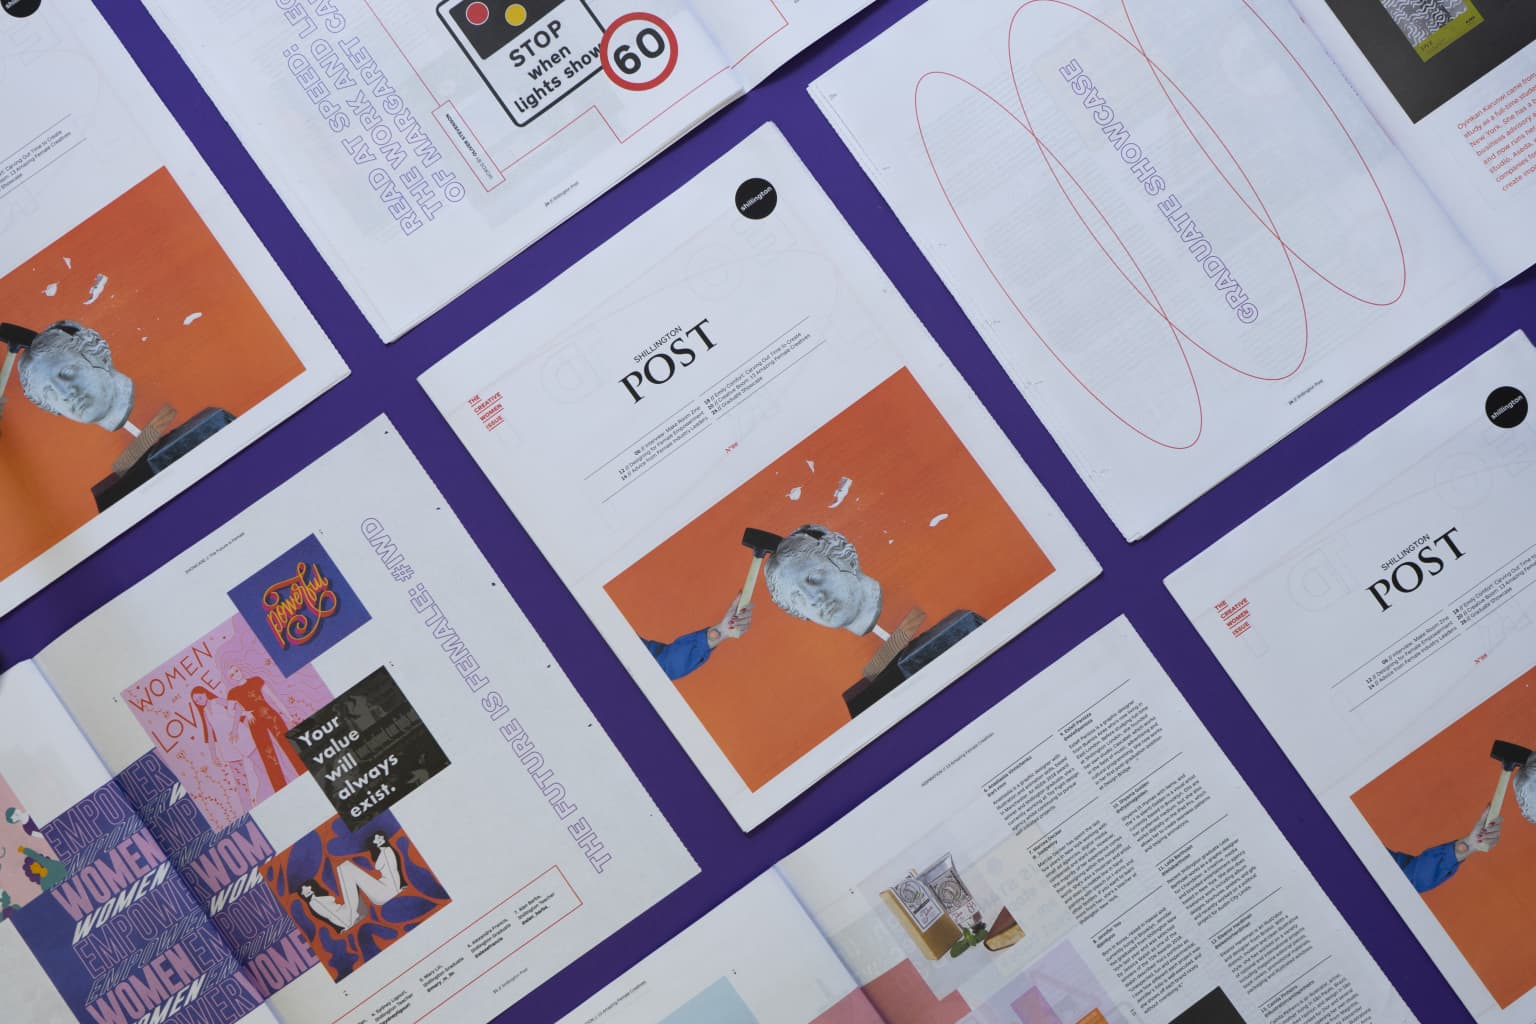 Shillington Post 08 — The Creative Women Issue